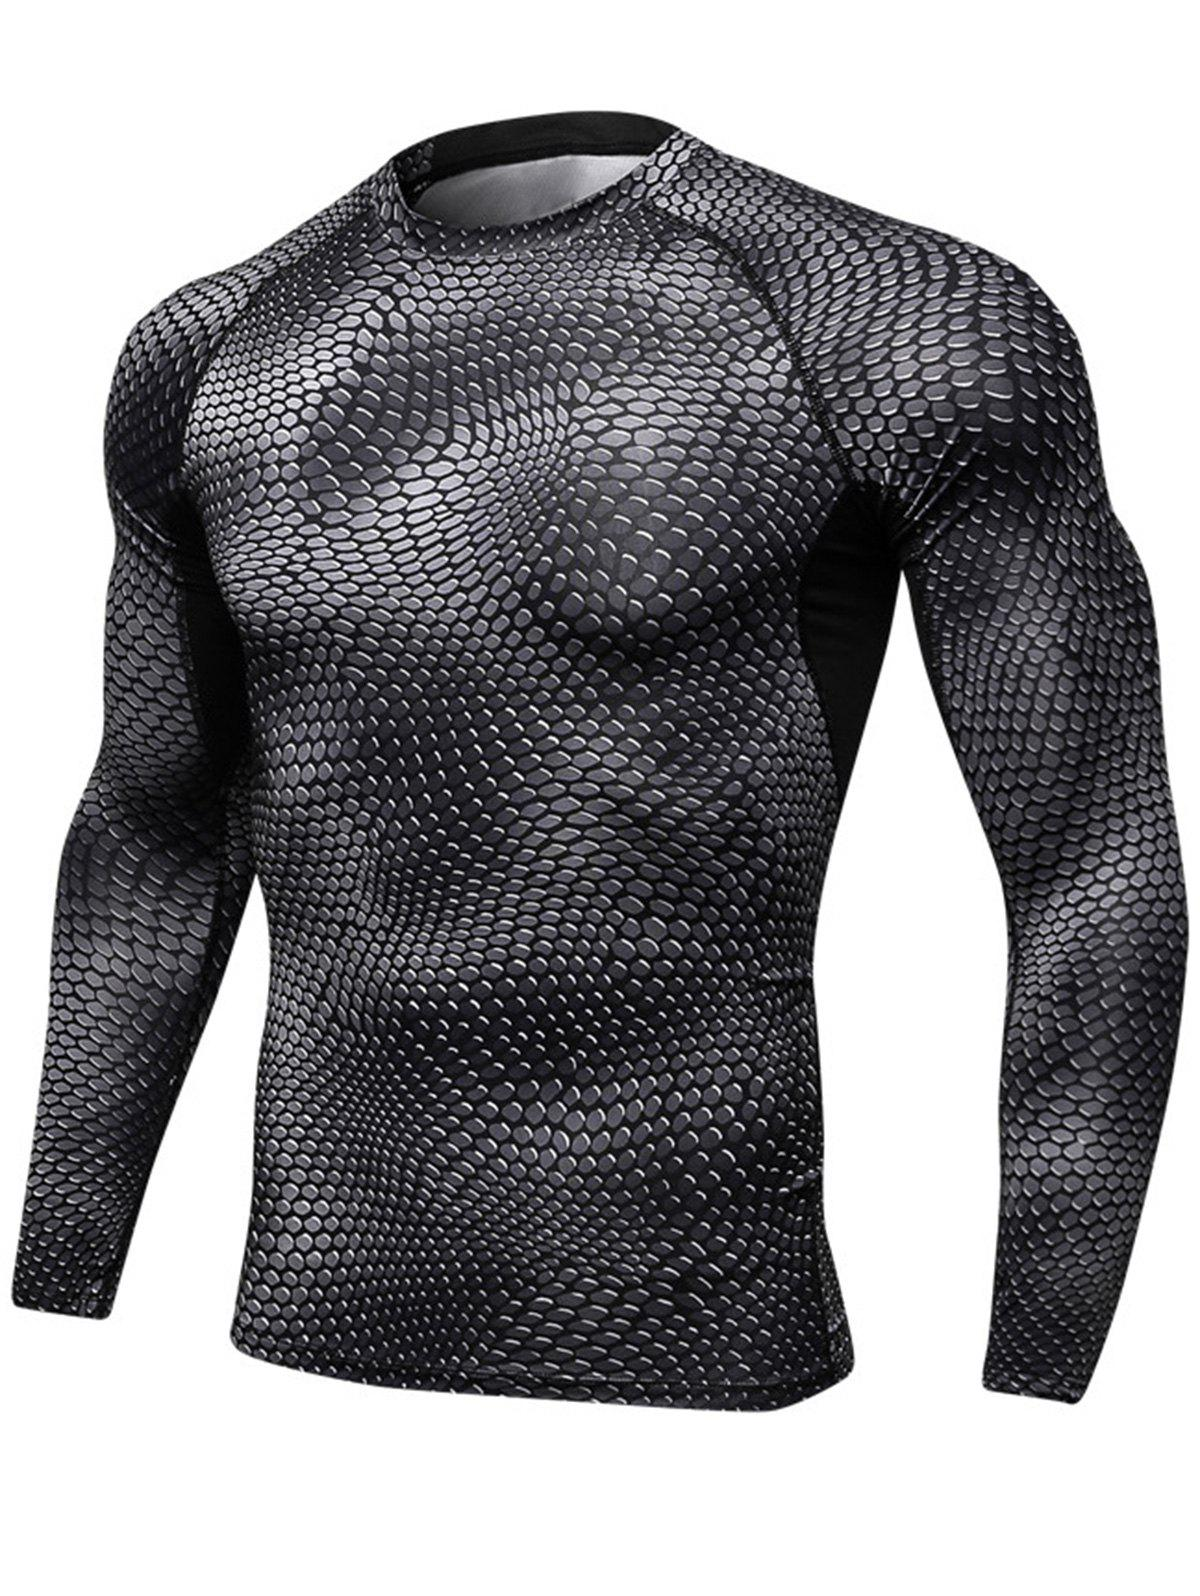 Quick Dry Stretchy 3D Printed Long Sleeve T-shirt - BLACK XL